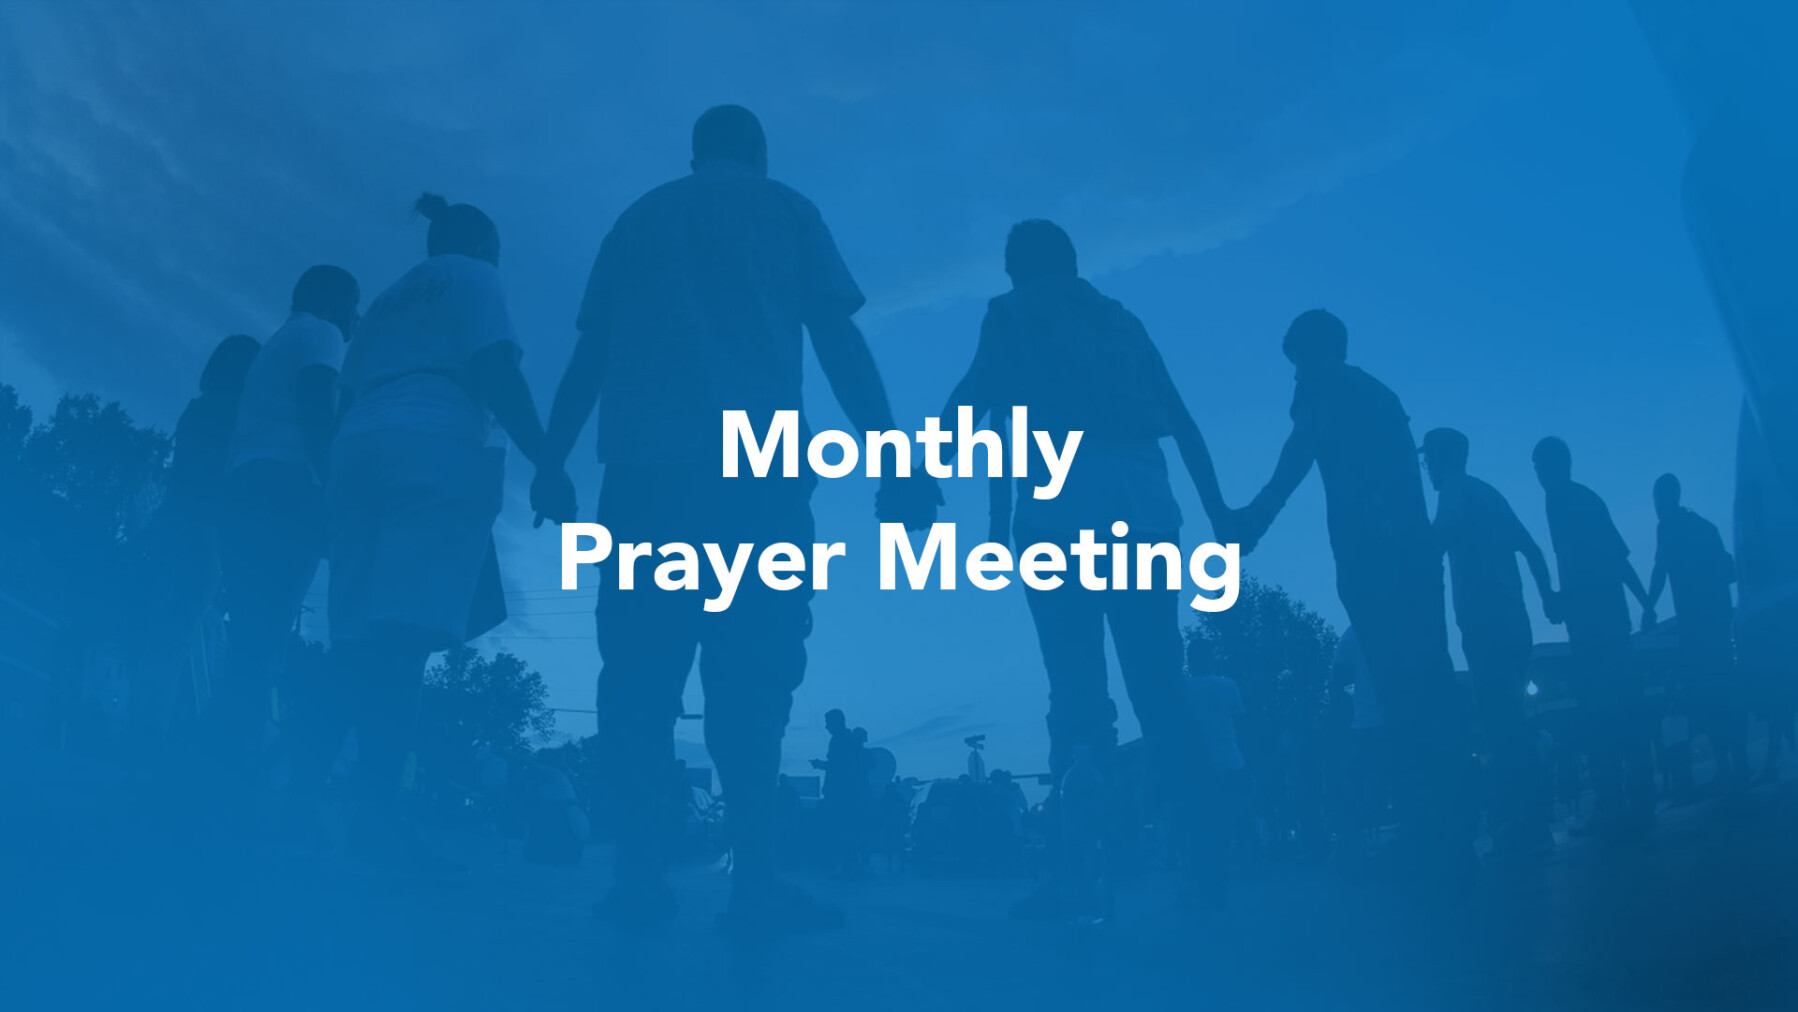 Monthly Prayer Meeting